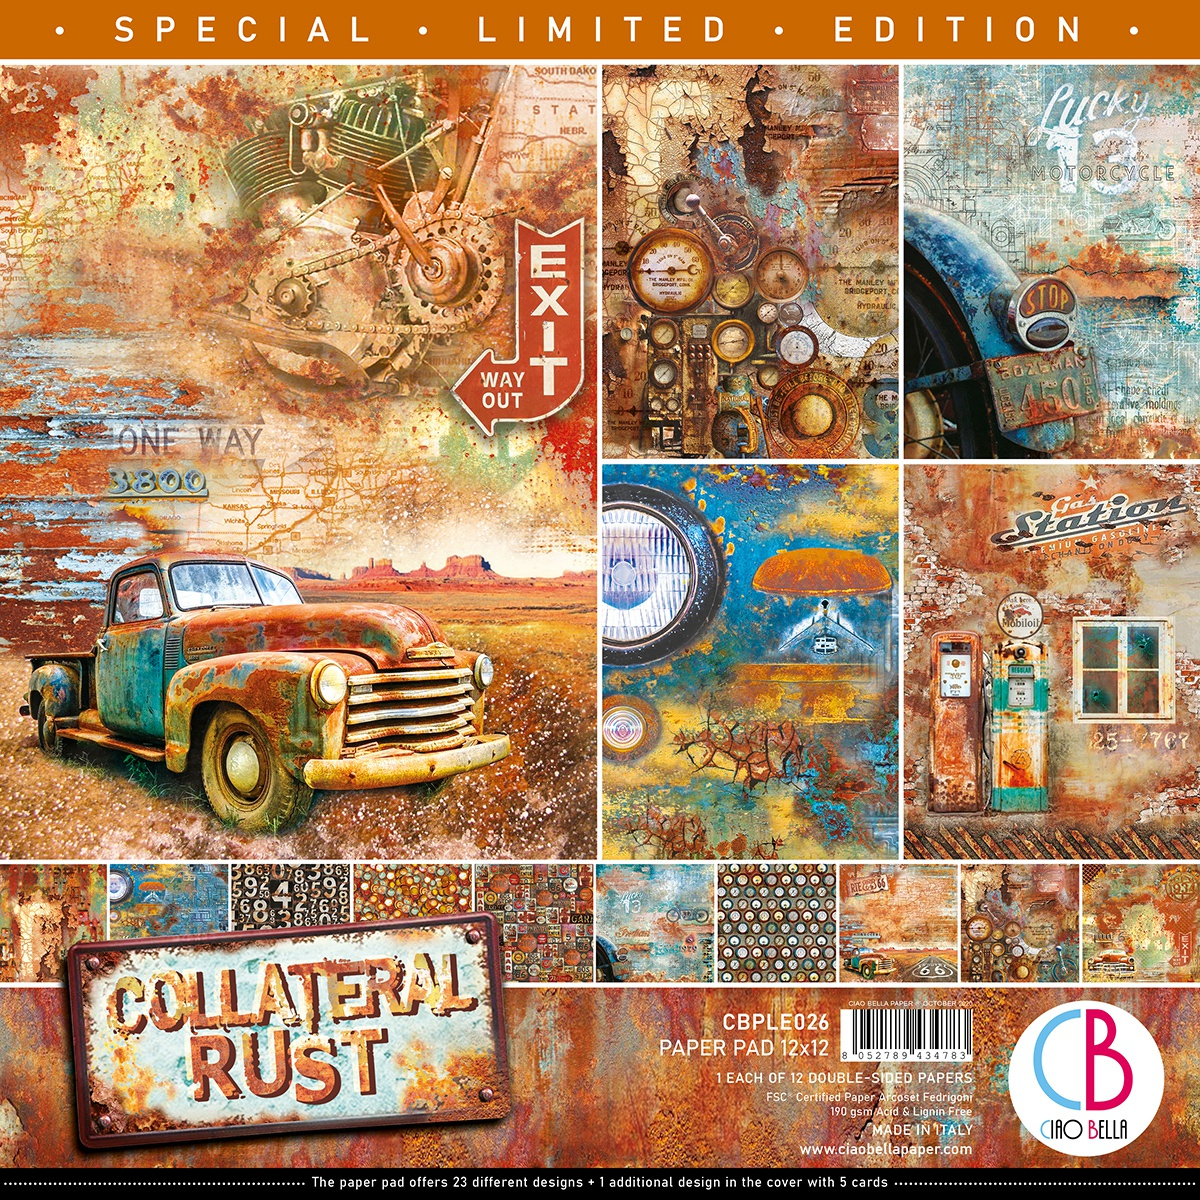 Ciao Bella Double-Sided Paper Pack 90lb 12X12 12/Pkg-Collateral Rust, 12 Designs/1 Each